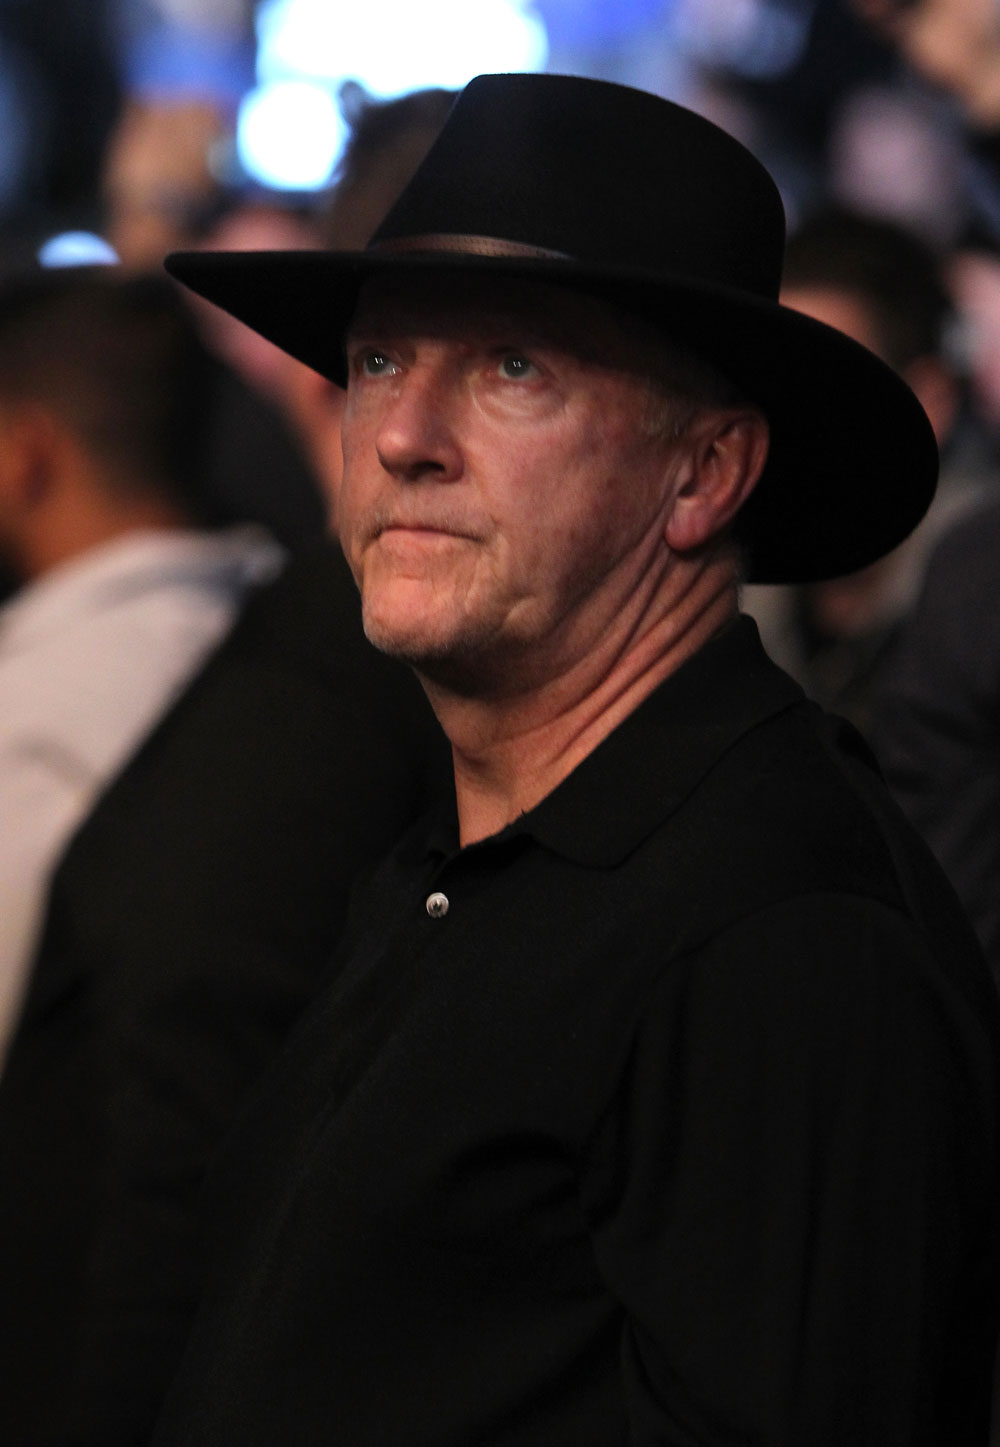 TORONTO, ON - DECEMBER 10:  Toronto Maple Leafs head coach Ron Wilson attends the UFC 140 event at Air Canada Centre on December 10, 2011 in Toronto, Ontario, Canada.  (Photo by Josh Hedges/Zuffa LLC/Zuffa LLC via Getty Images)